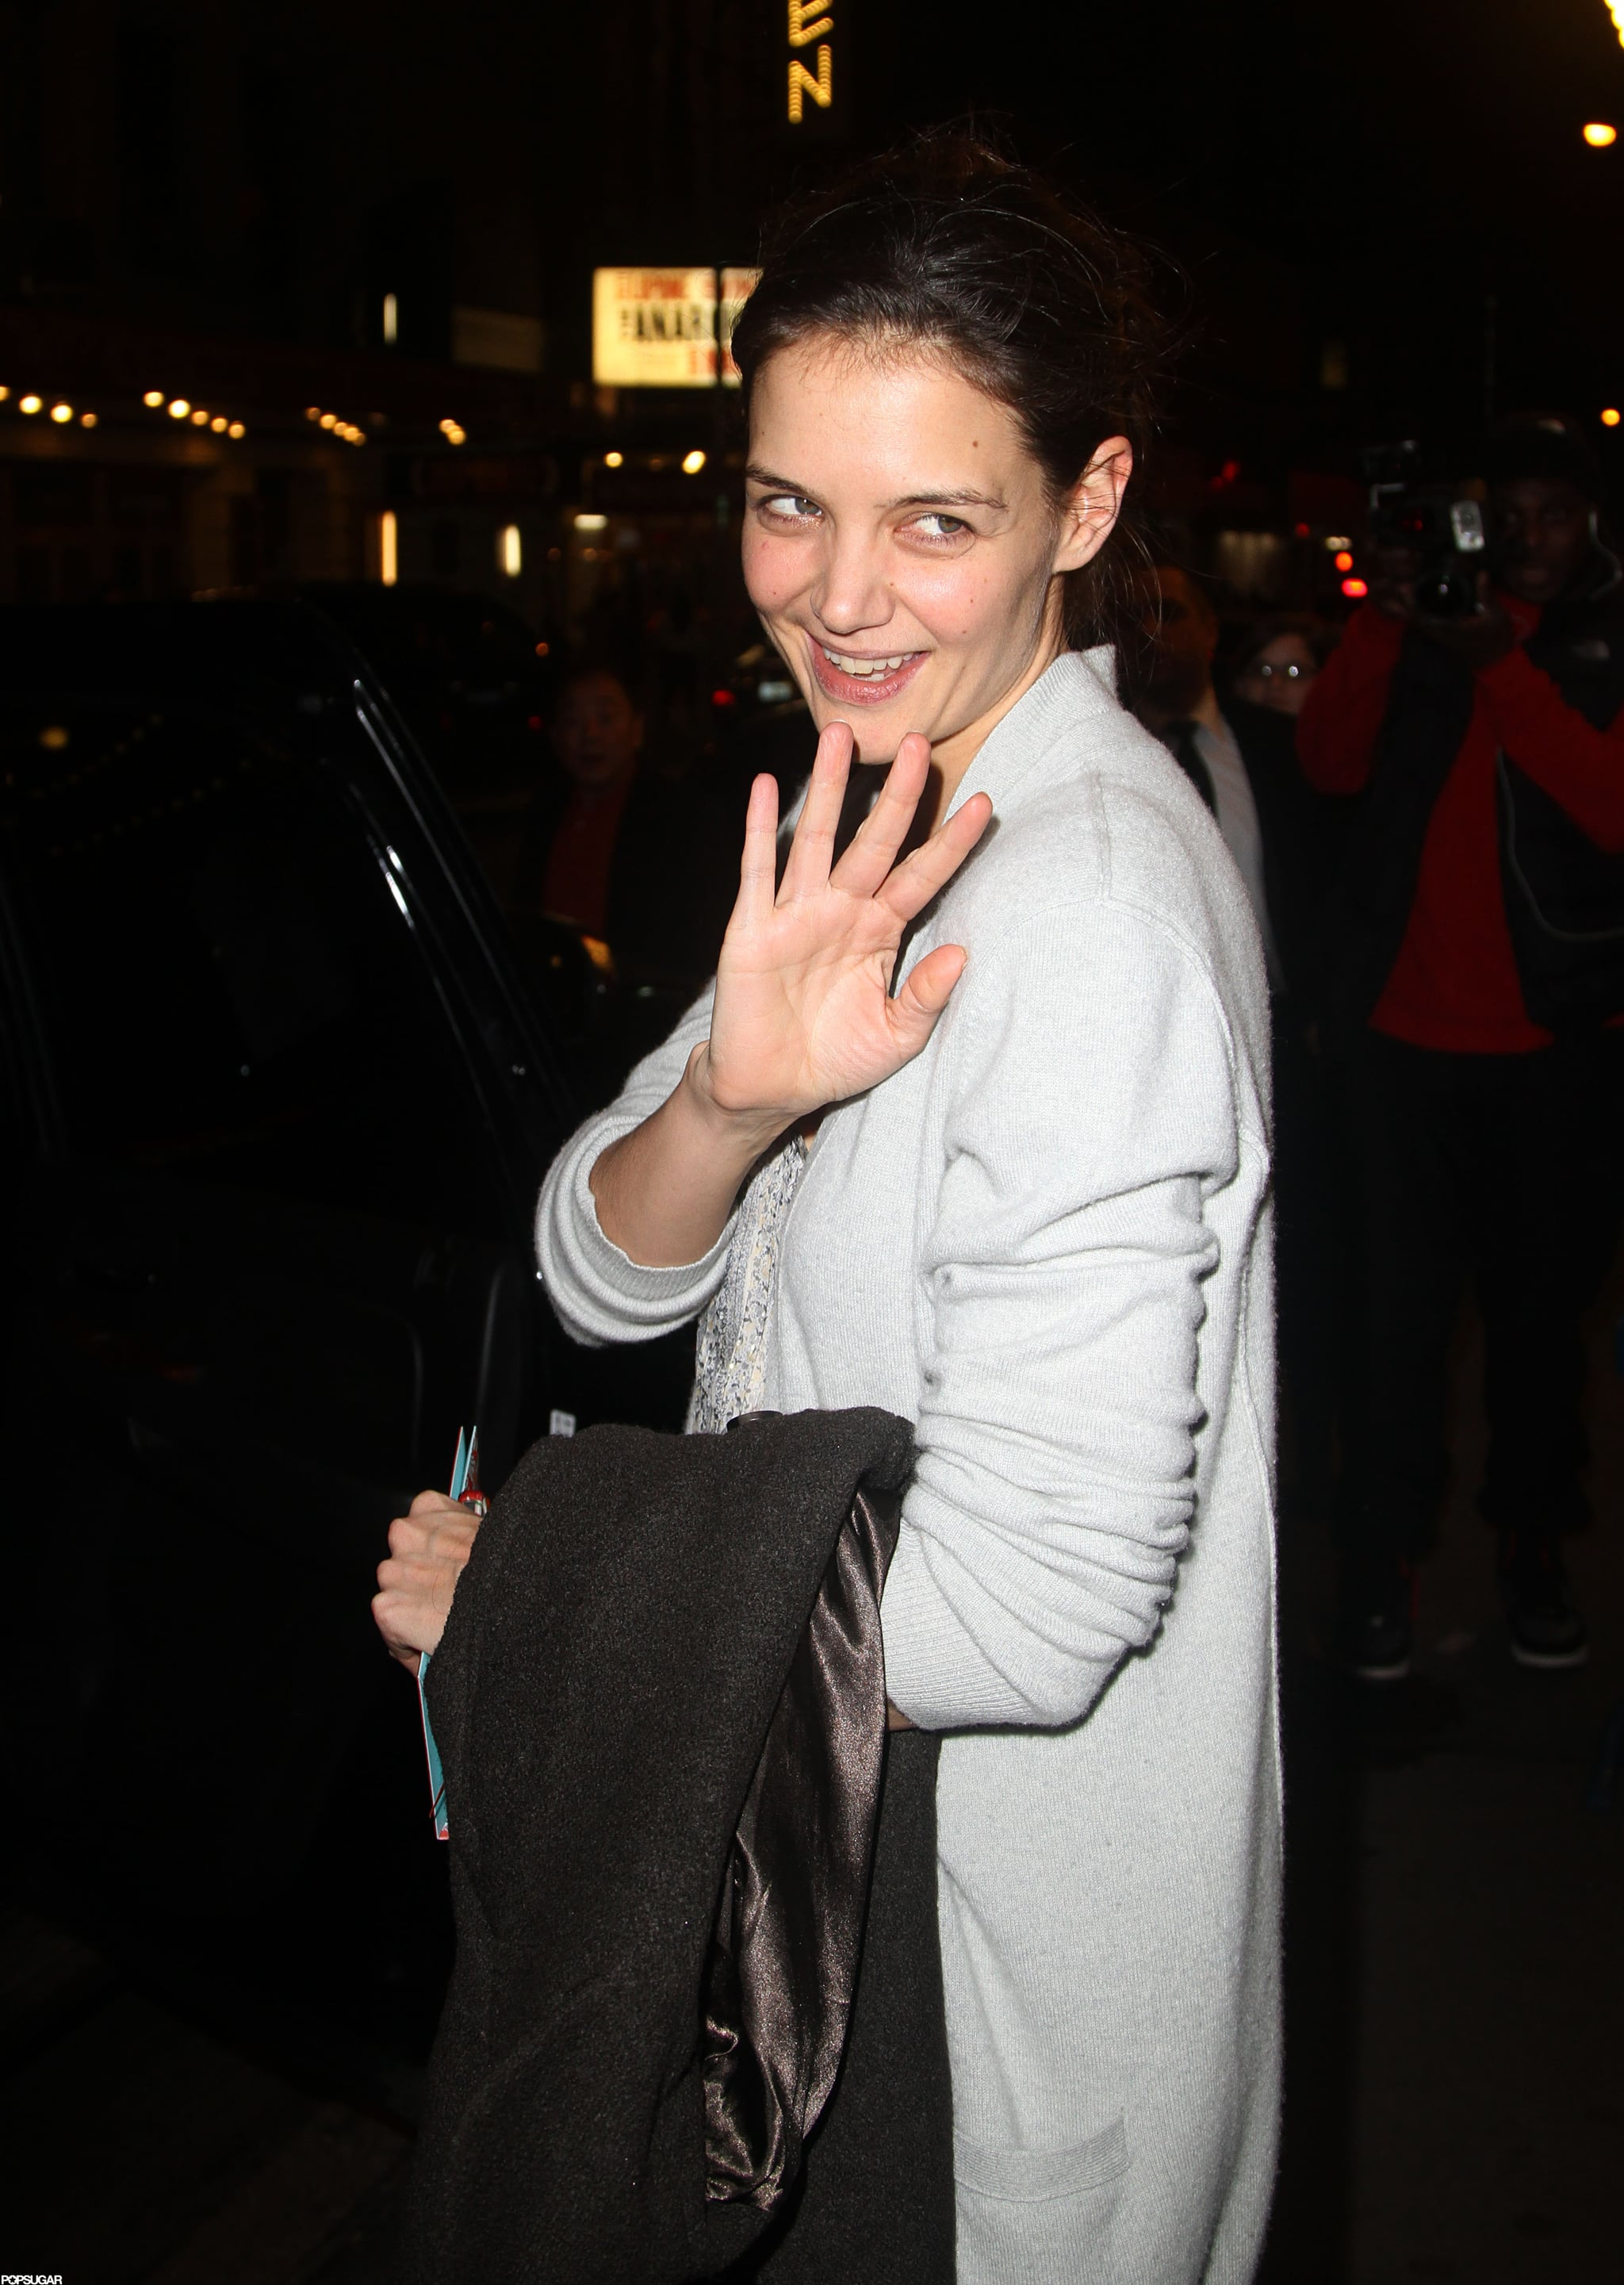 Katie Holmes gave a wave as she left her Broadway show.